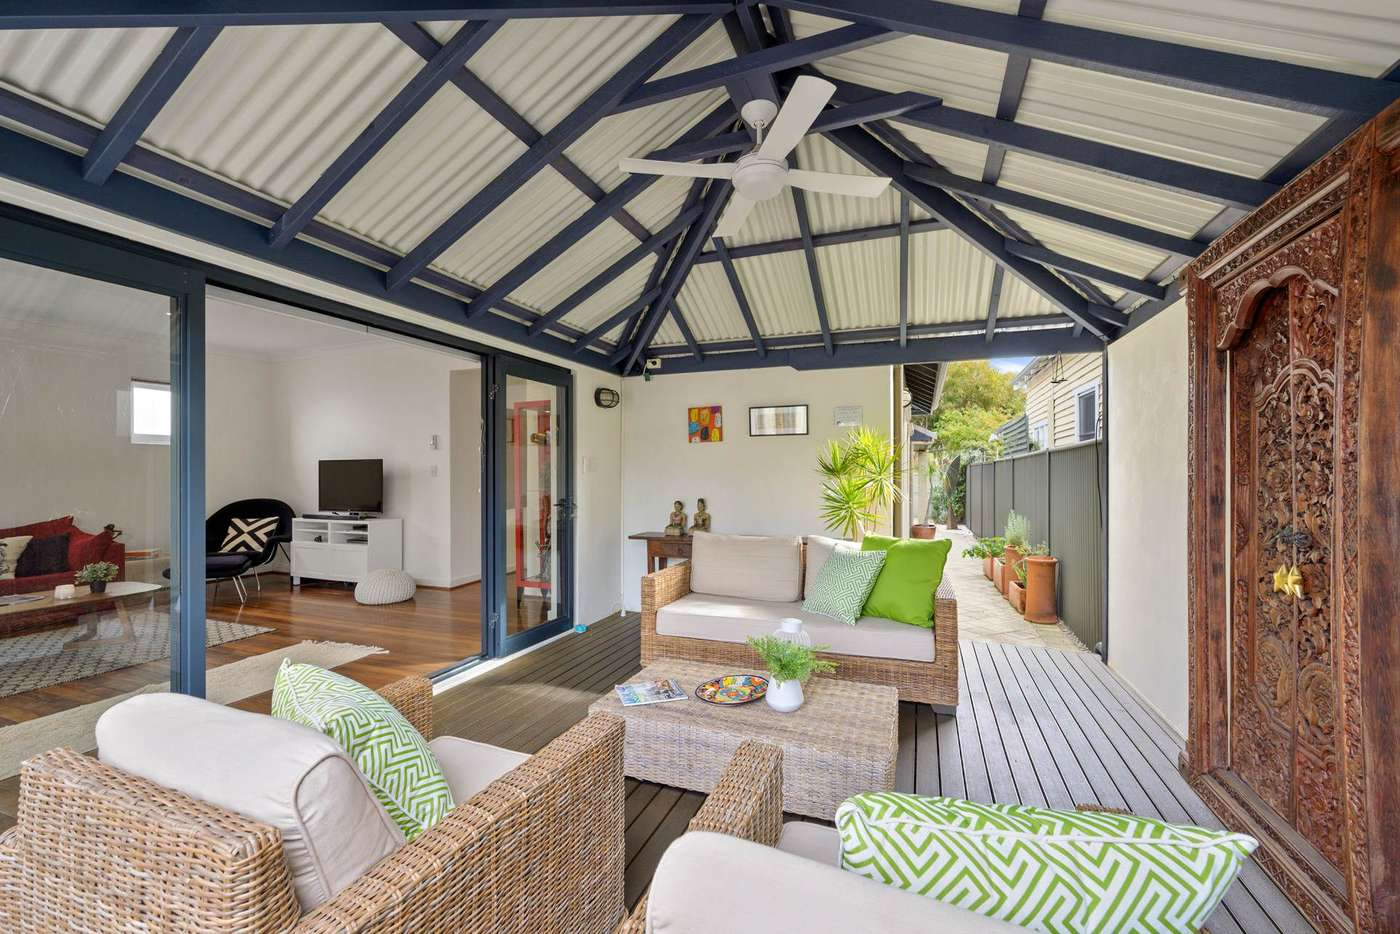 Sixth view of Homely house listing, 4 Hilda Street, Shenton Park WA 6008